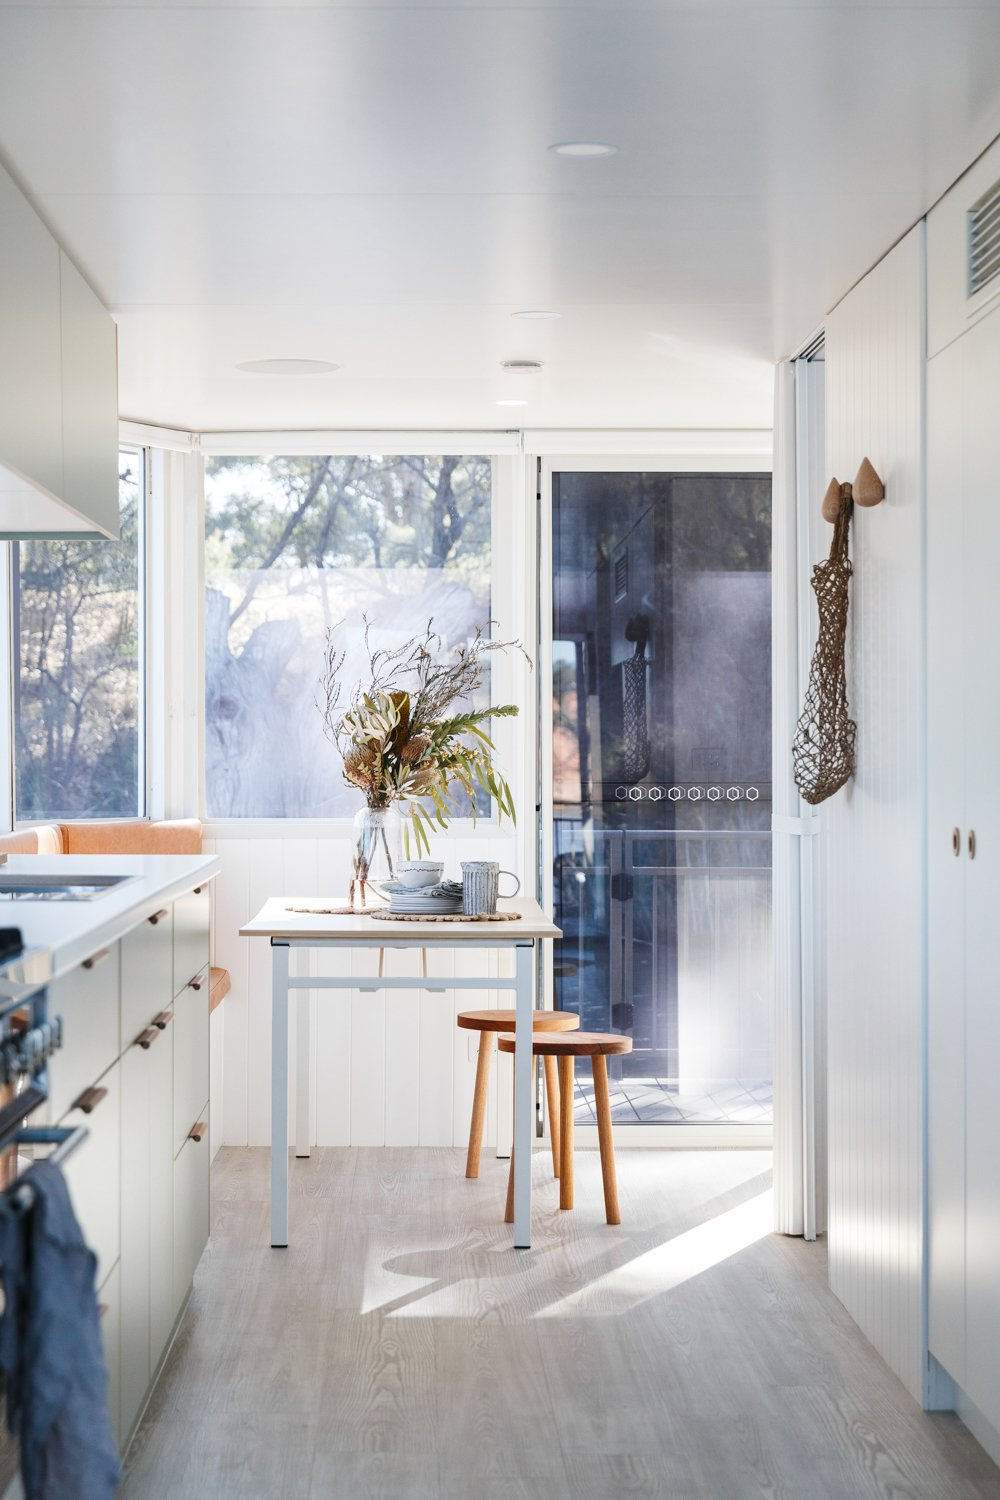 Petite Banquette Design Life In This Renovated Houseboat Would Be But A Dream Dwell